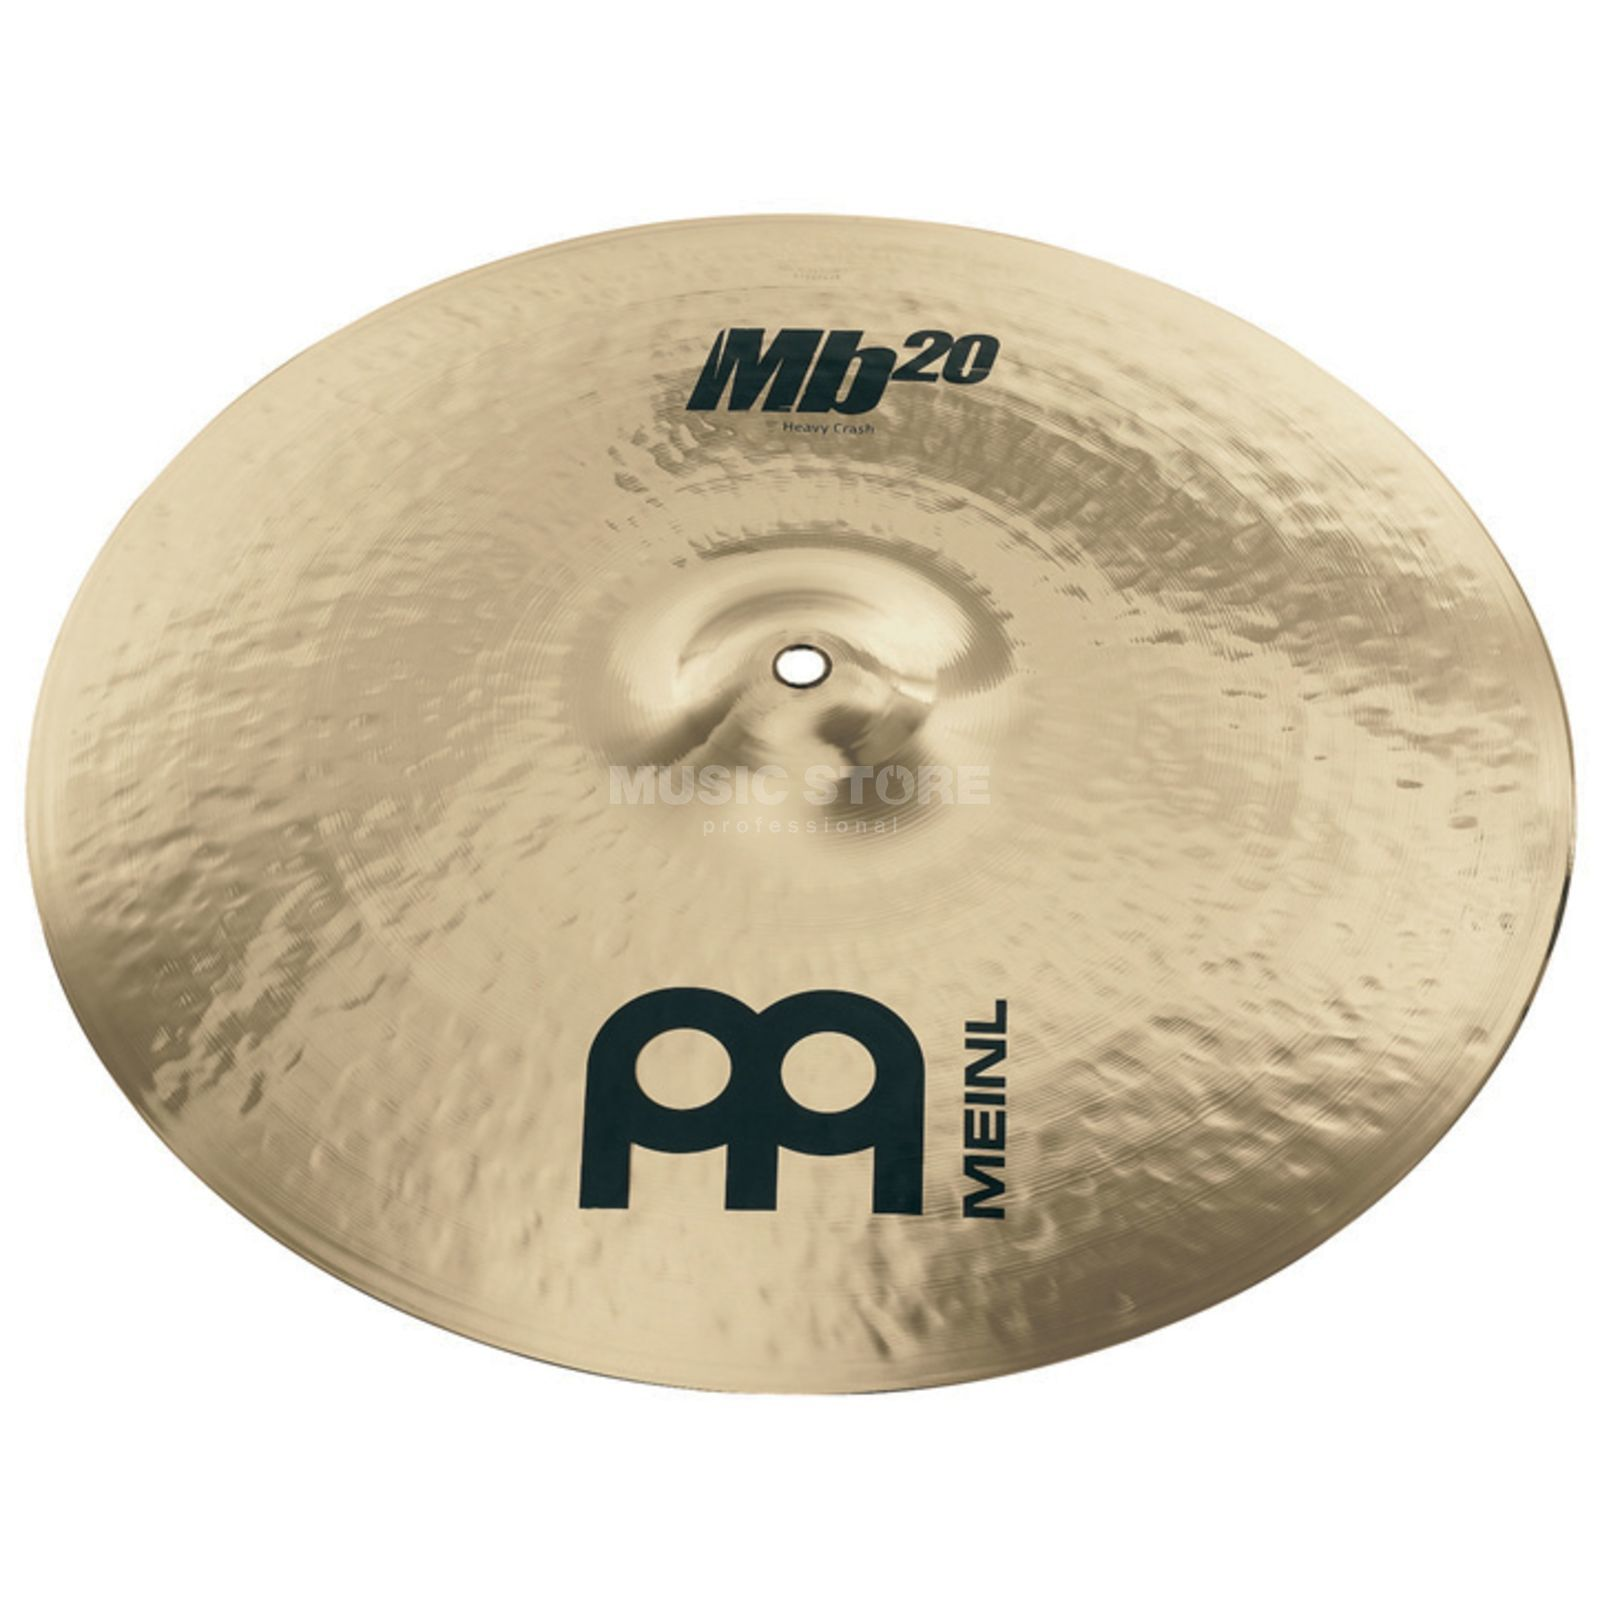 "Meinl MB20 Heavy Crash 16"" MB20-16HC-B, Brilliant Finish Product Image"